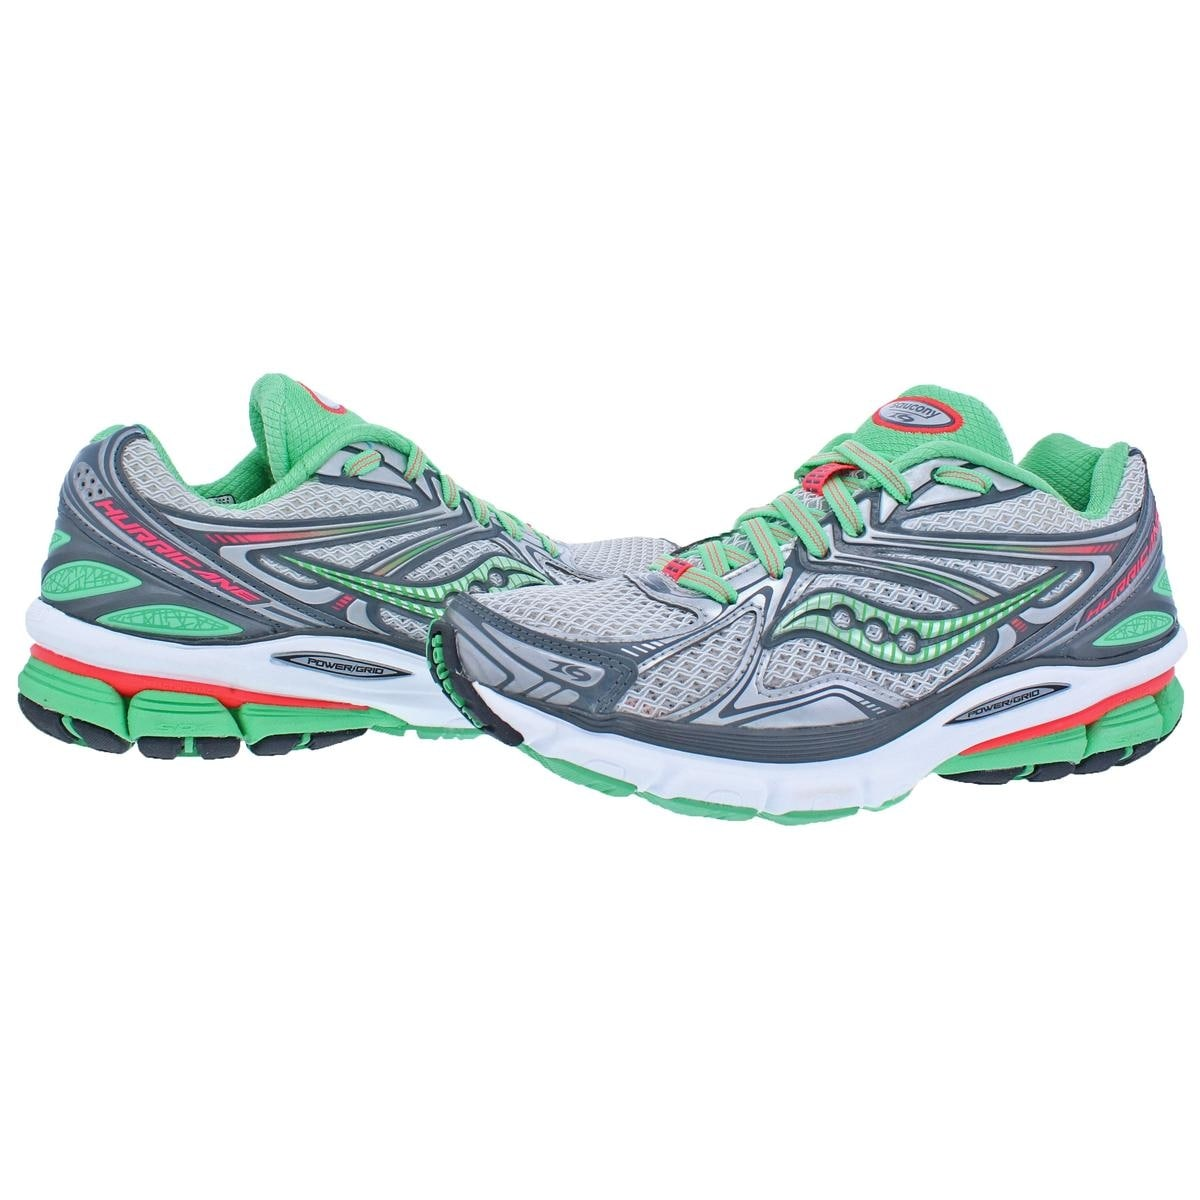 2e765dfb Shop Saucony Womens Hurricane 16 Running, Cross Training Shoes Sauc-Fit  Power Grid - 6 medium (b,m) - Free Shipping Today - Overstock - 22320920